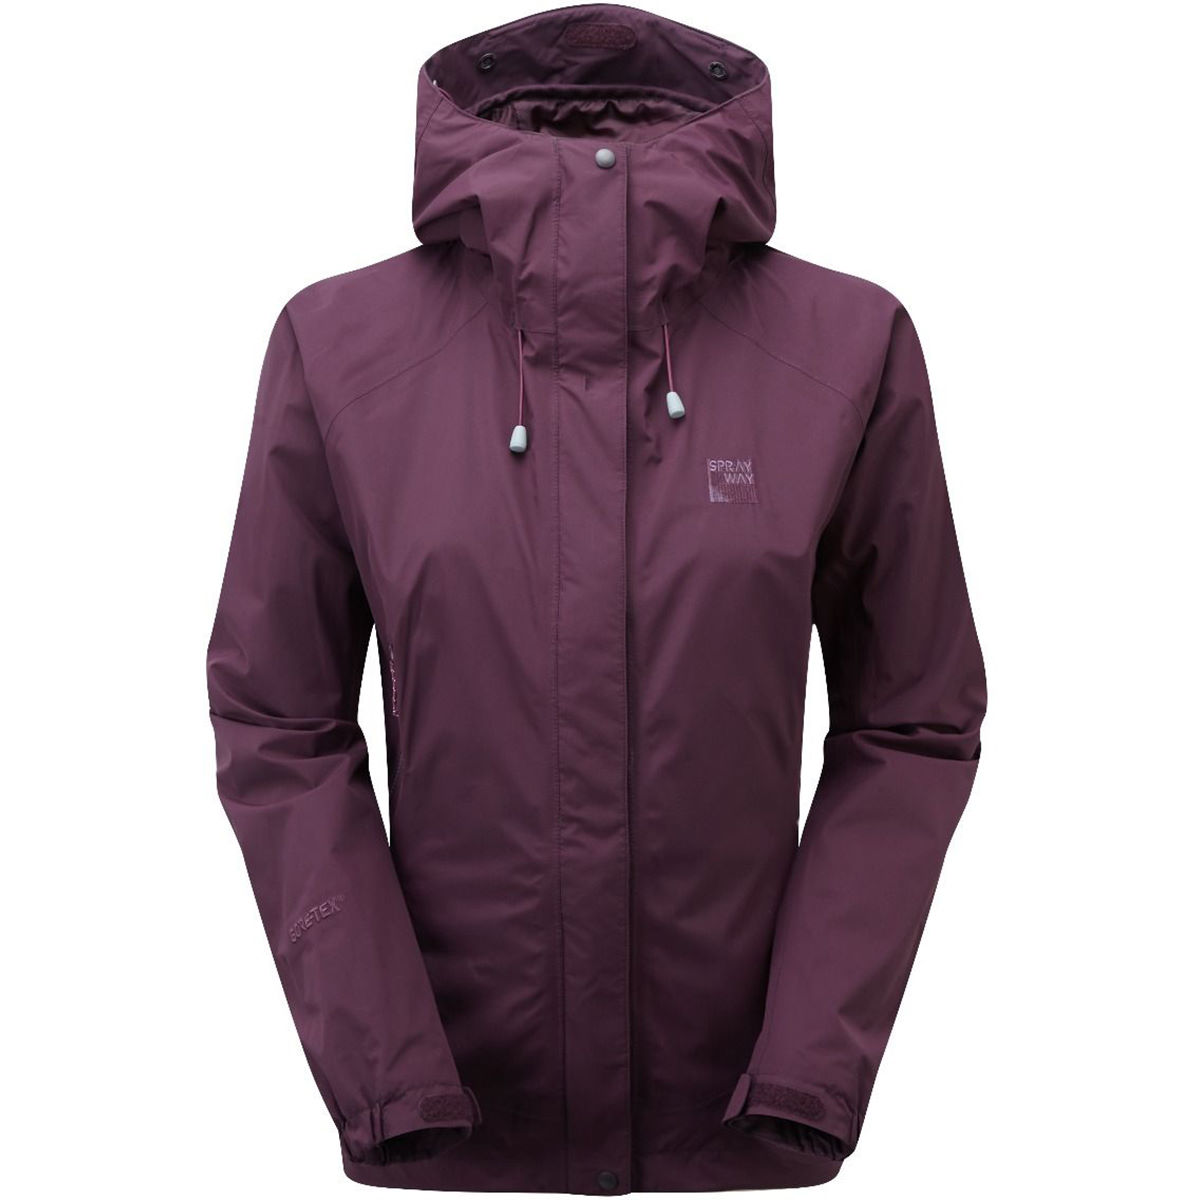 Sprayway Women's Era Jacket - Chaquetas